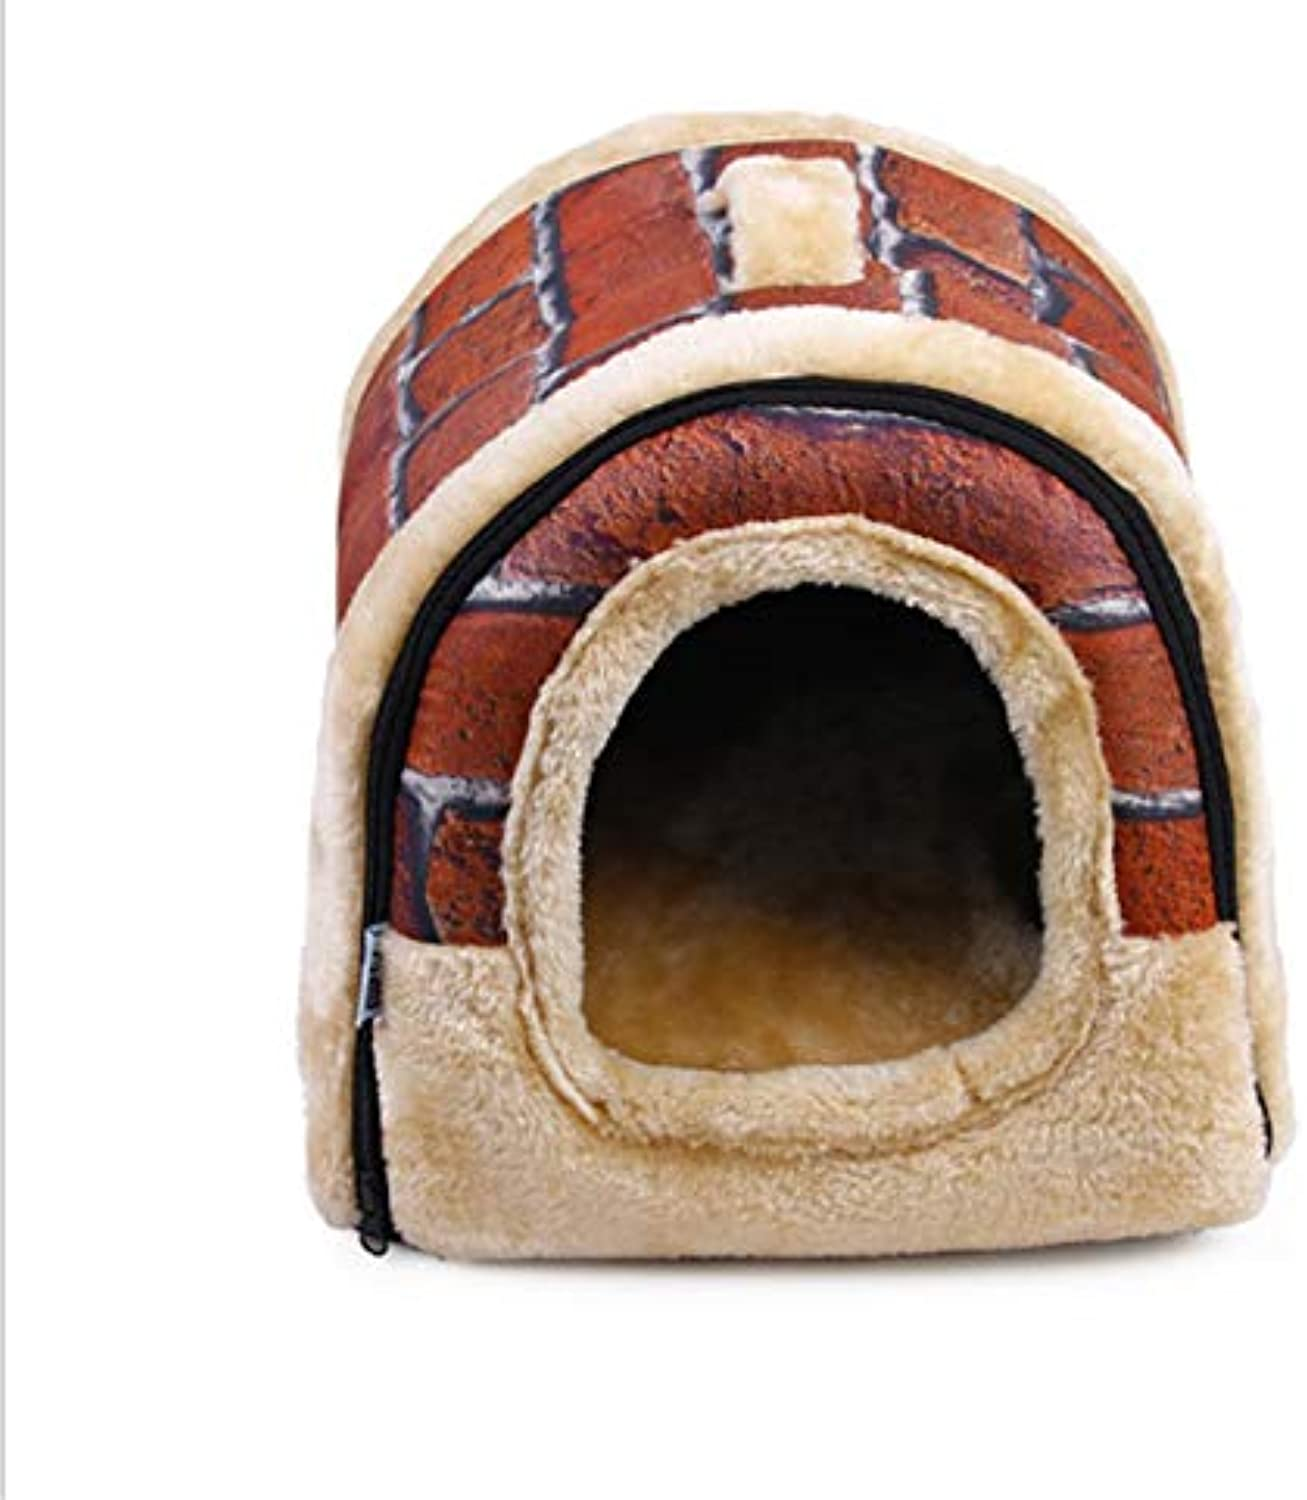 Gaobey Pet Cat Igloo Bed Small Dog Soft Bed Met House Waterproof Covered 1PC (S,M,L,XL) (XL, Red)